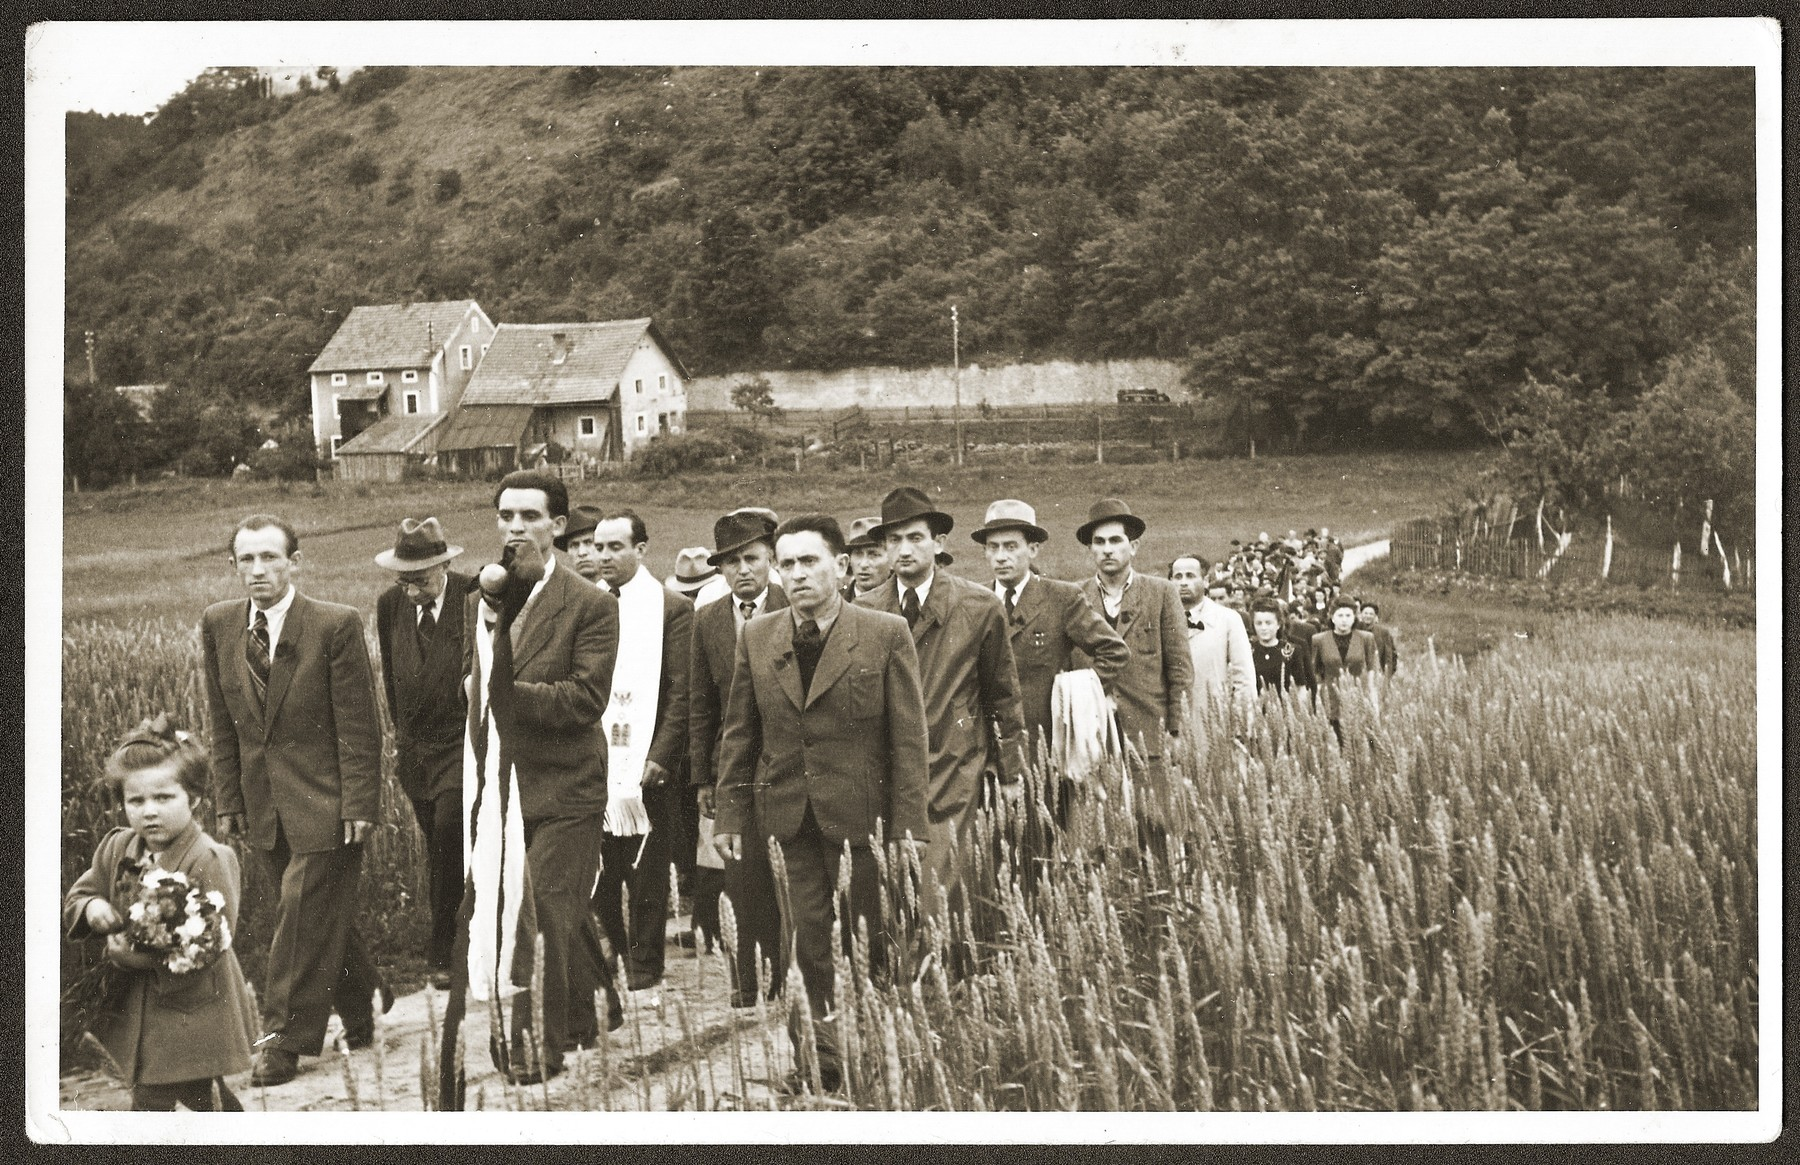 Mania Sztajman leads a procession of DPs to a cemetery near Woerth an der Donau, where they will hold a memorial service.